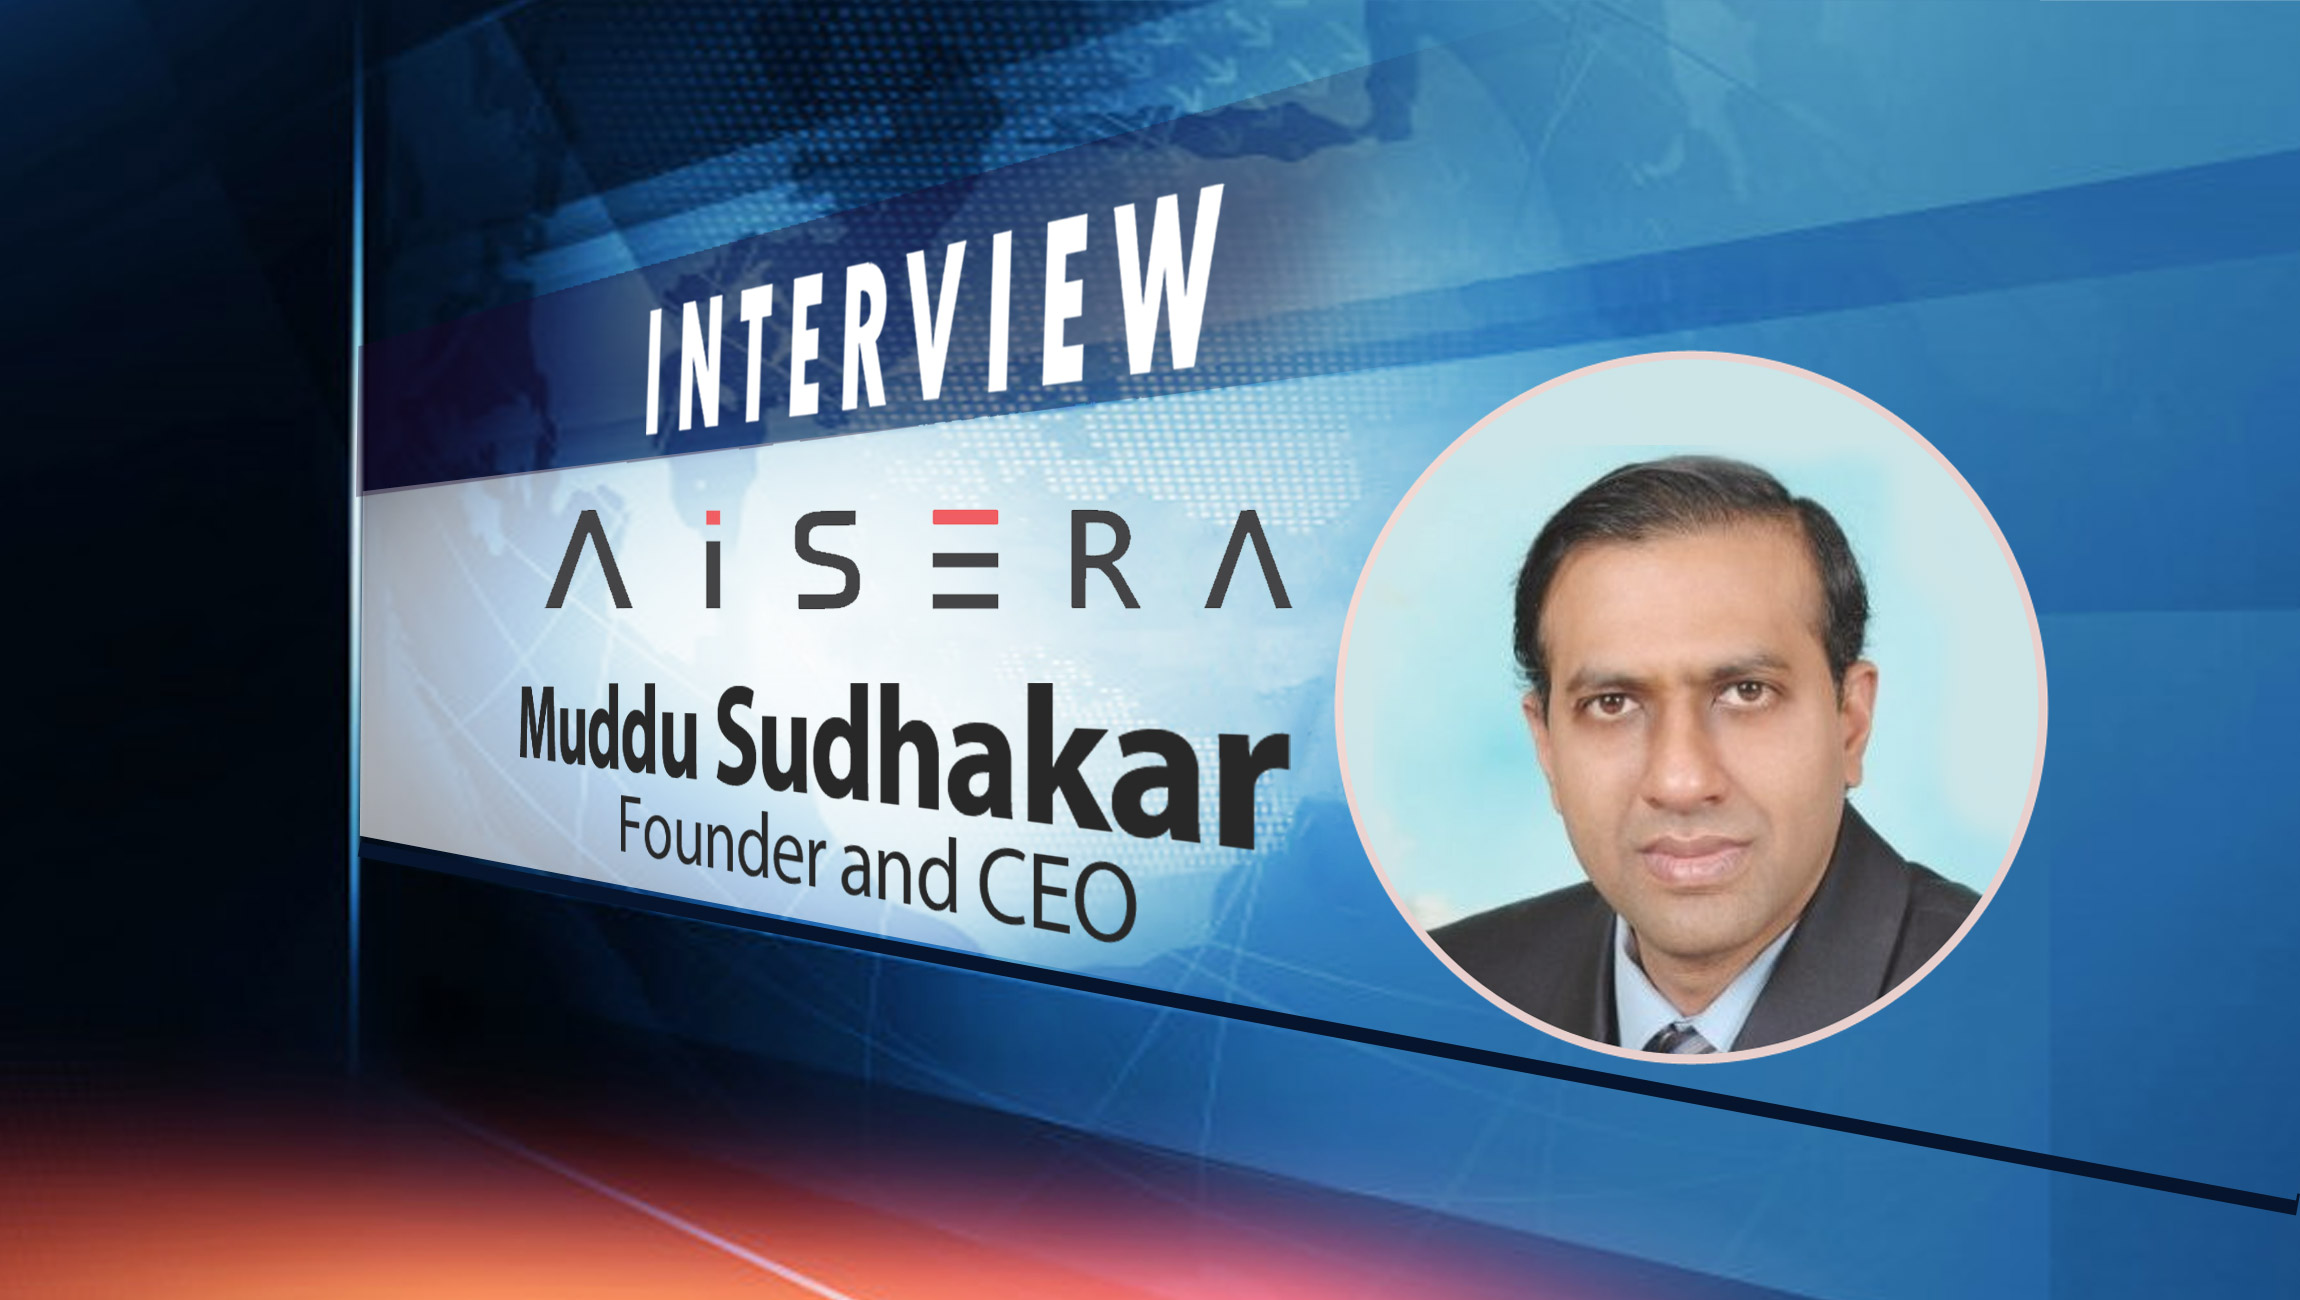 SalesTechStar Interview with Muddu Sudhakar, Founder and CEO at Aisera